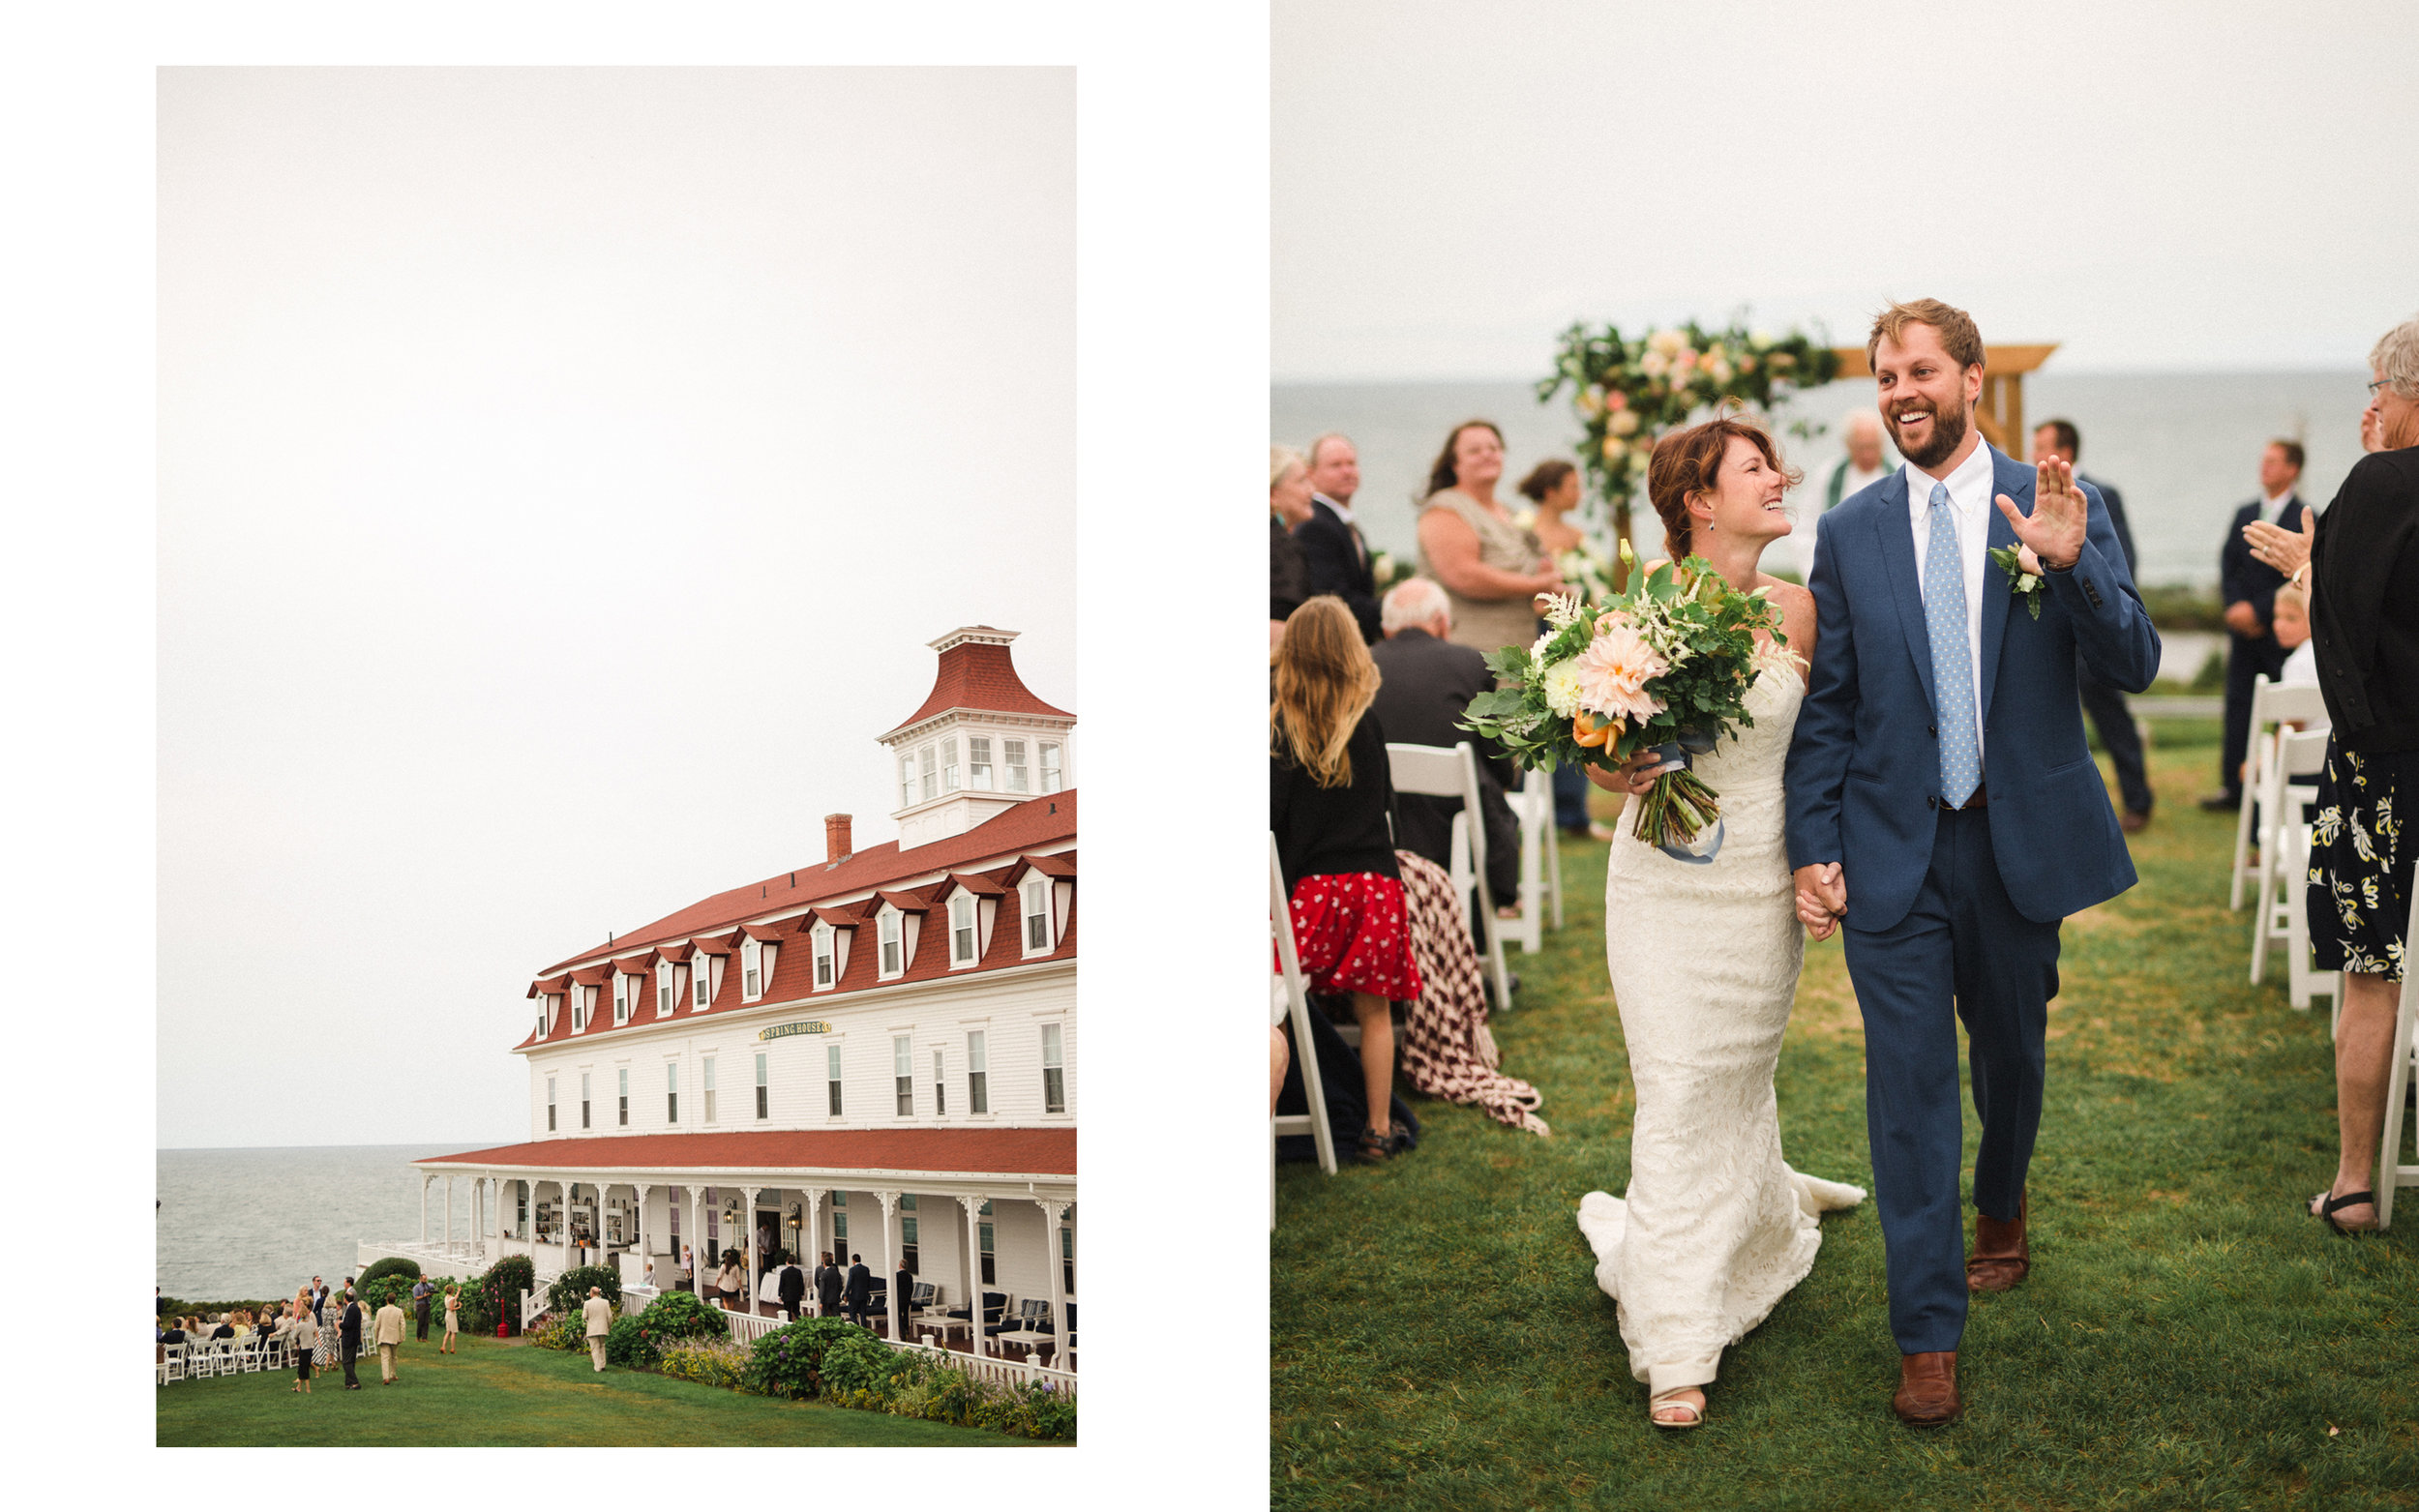 Block Island Wedding Photographer_Meg Haley Photographs_038.jpg